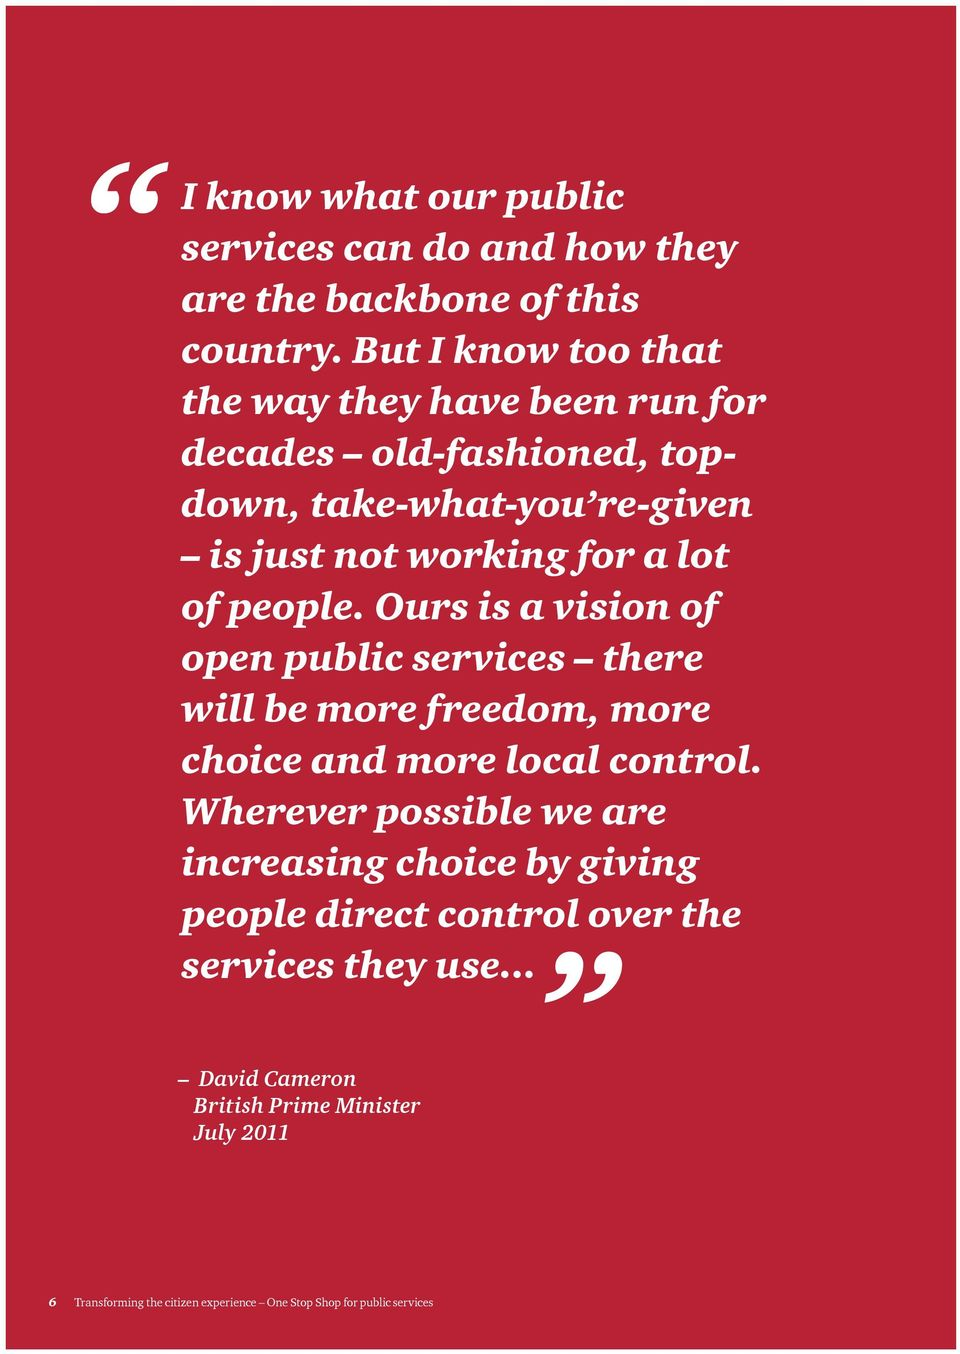 people. Ours is a vision of open public services there will be more freedom, more choice and more local control.